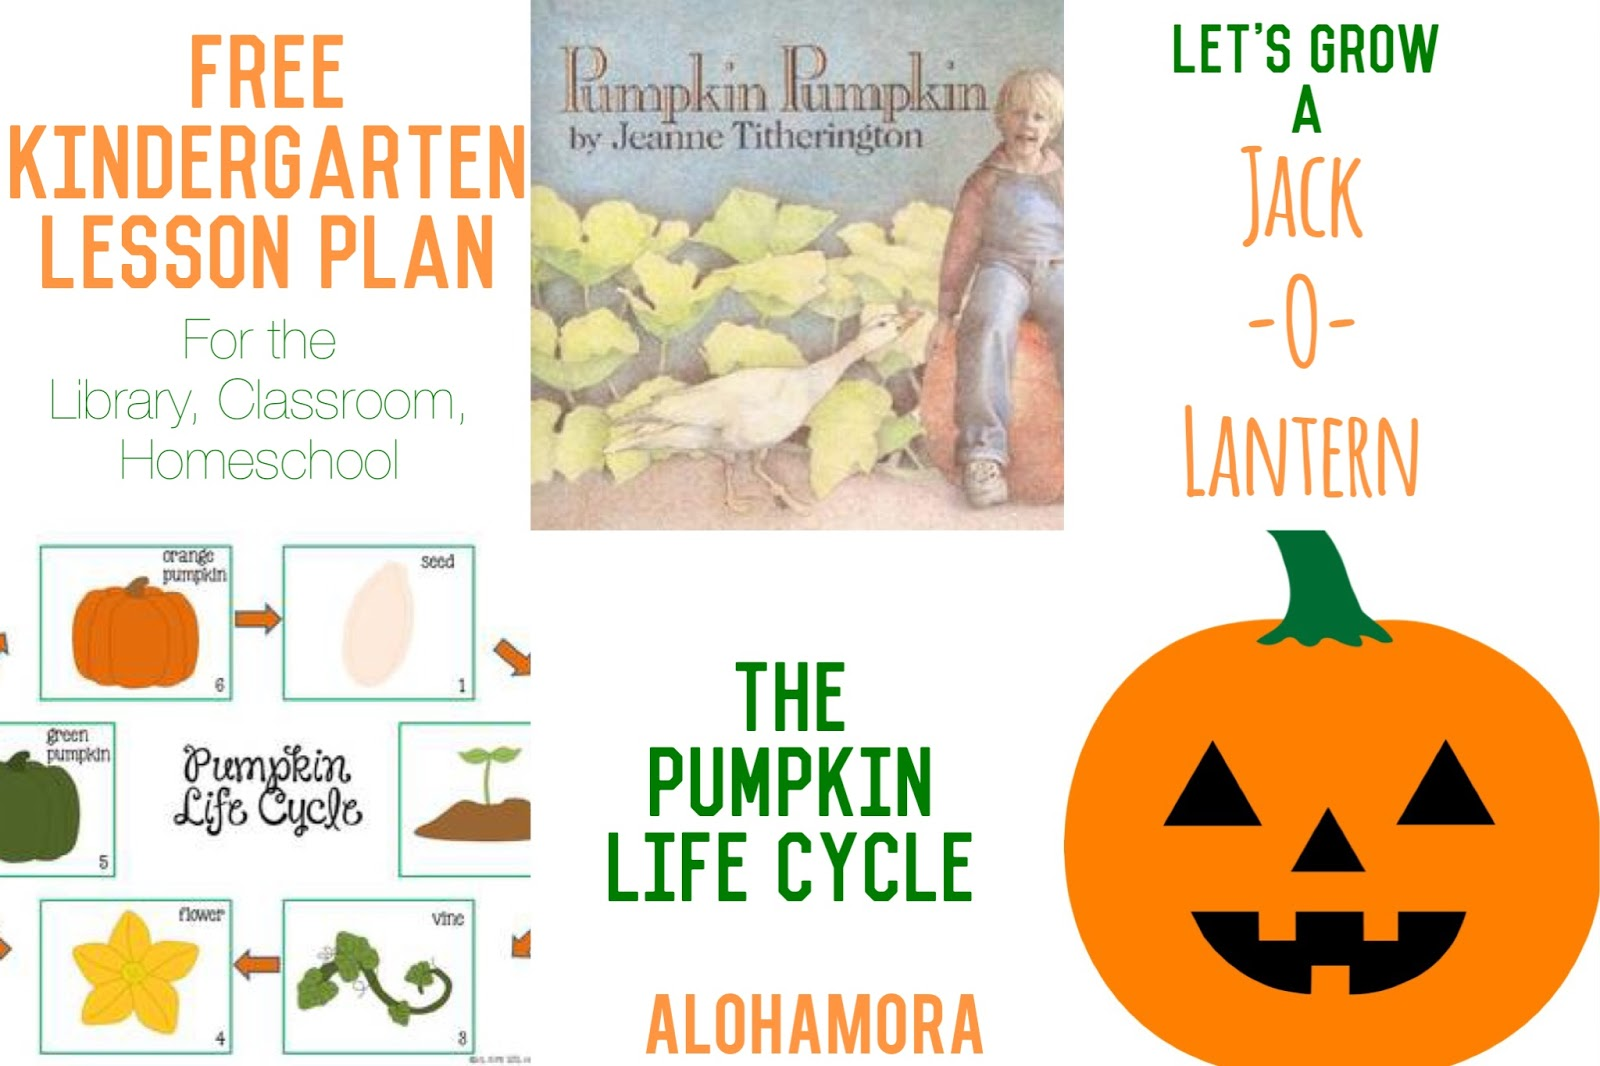 Free Kindergarten Lesson Plan using a picture book, Pumpkin, Pumpkin by Jeanne Titherington.  How to Grow a Jack-O-Lantern and the Life Cycle of a Pumpkin.  Could be used in First or Second Grade as well. Alohamora Open a Book http://www.alohamoraopenabook.blogspot.com/